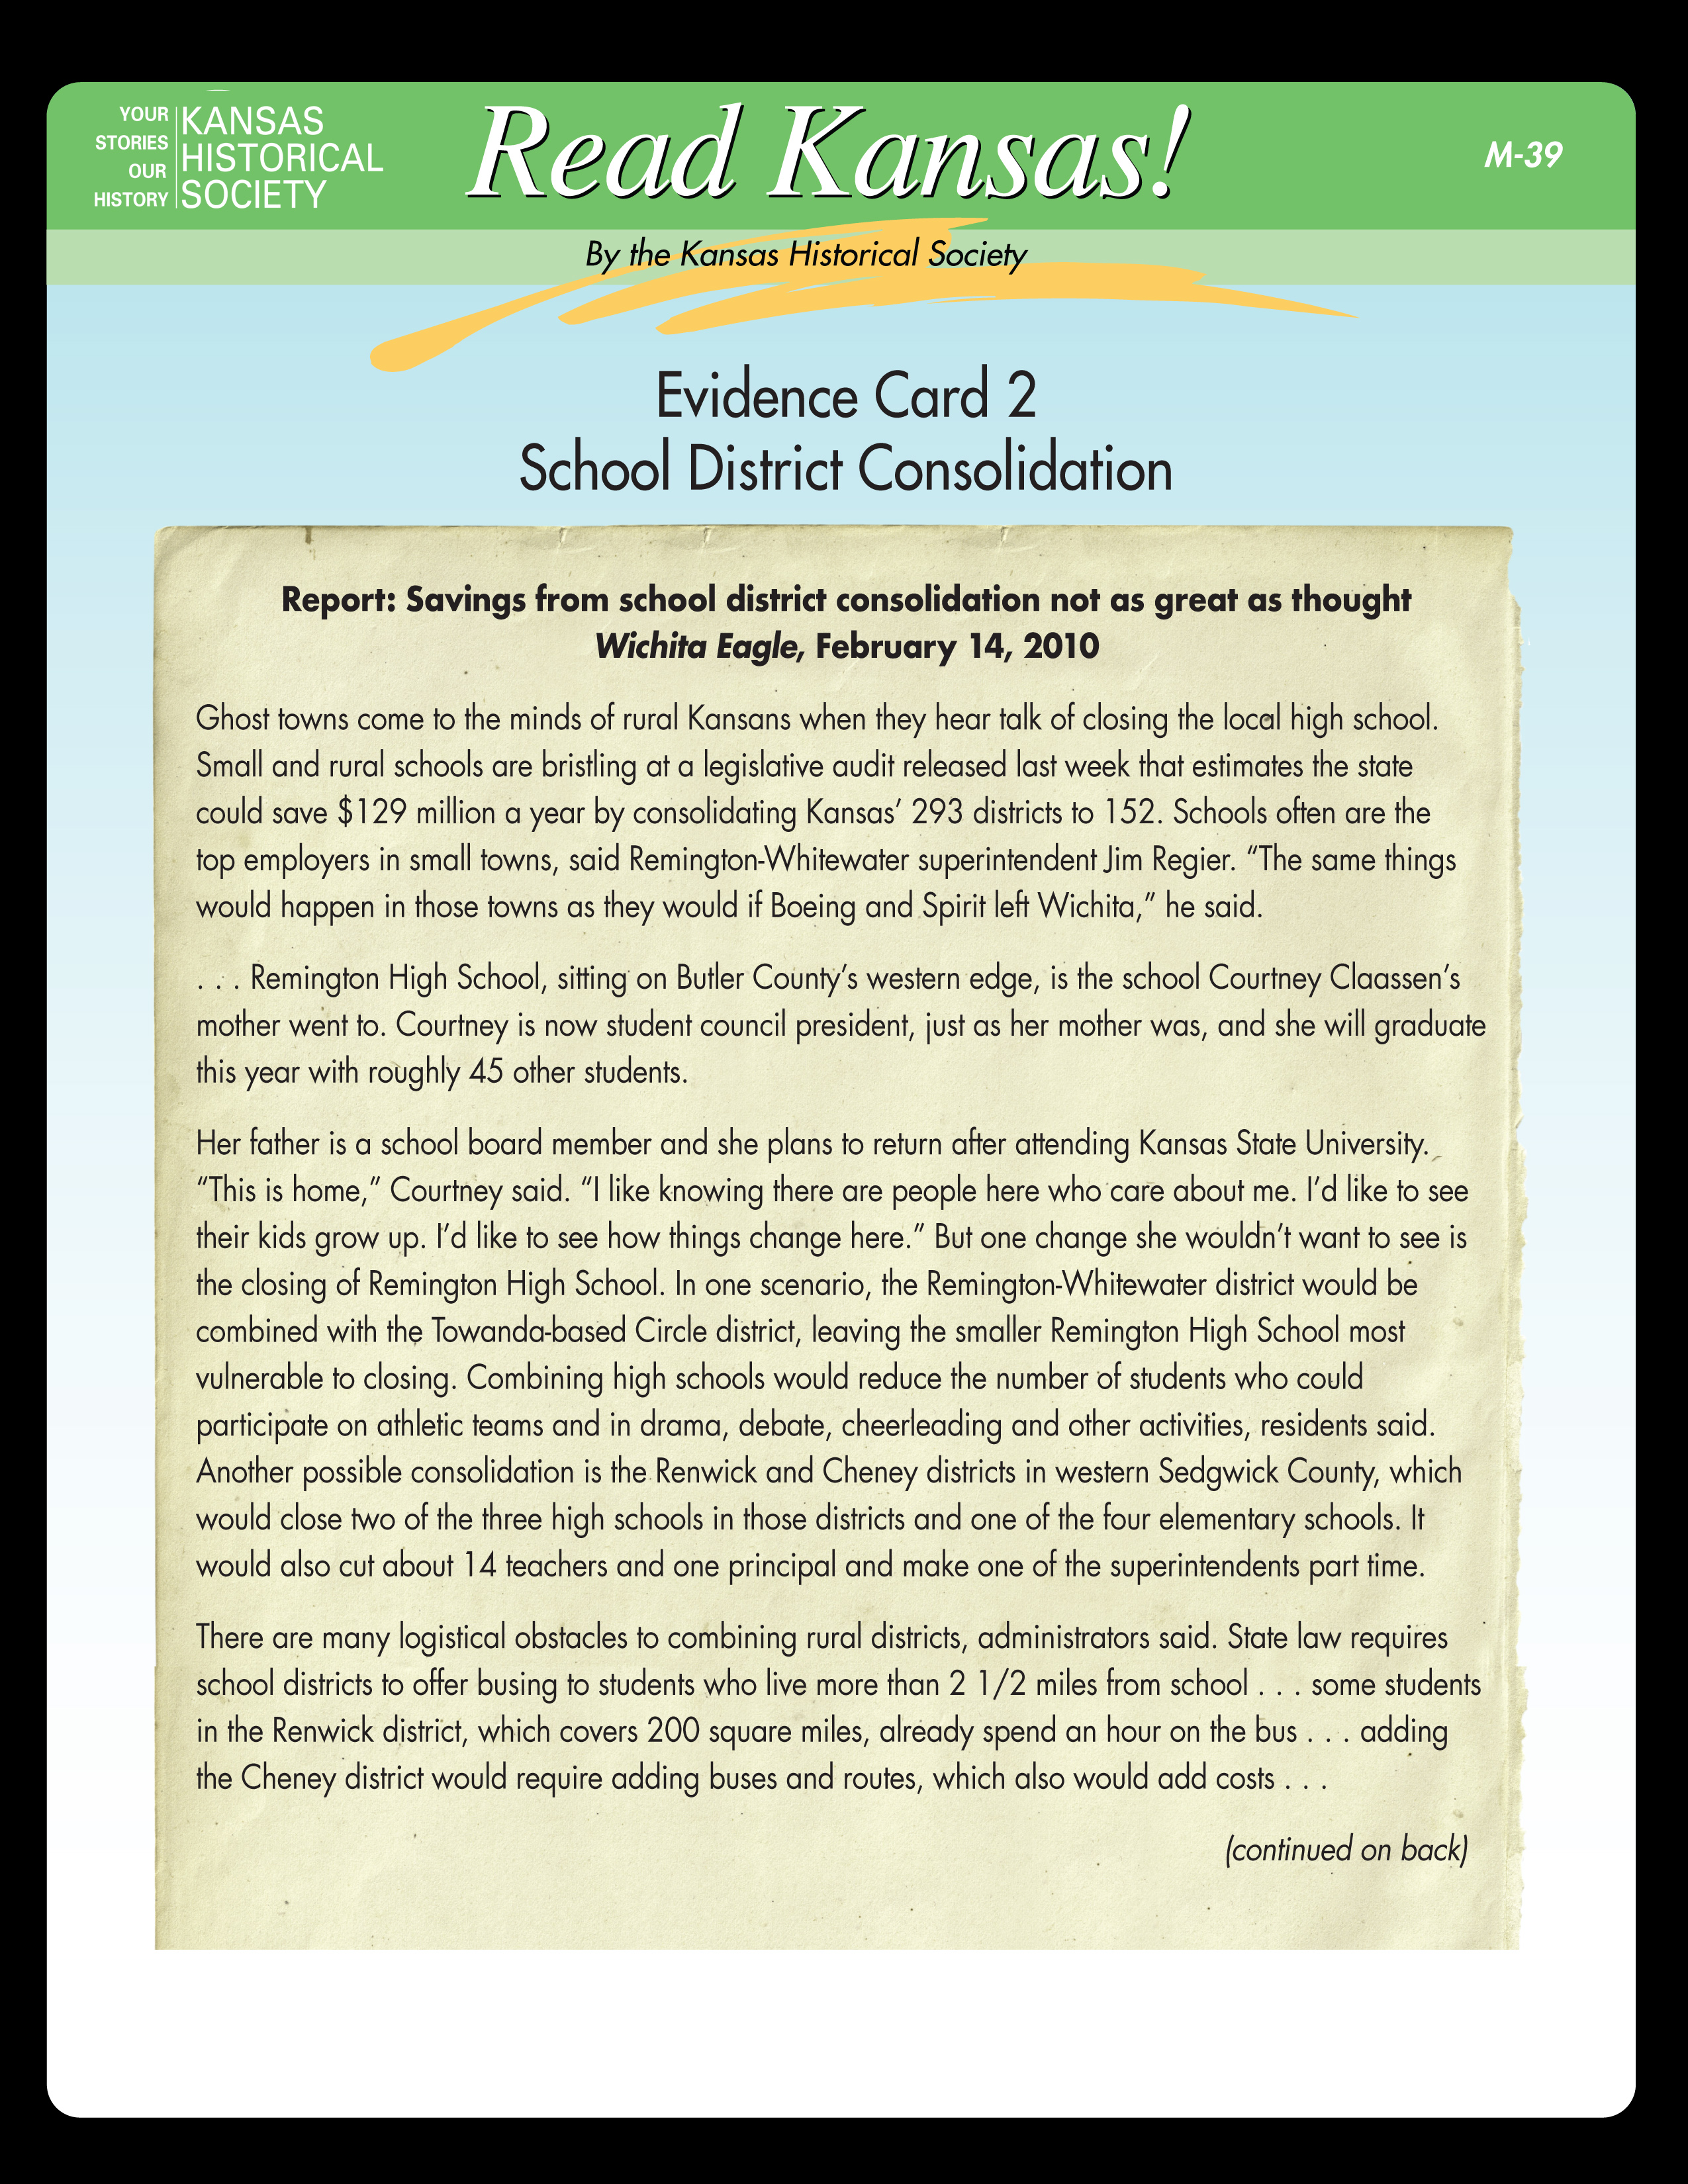 M-39 Evidence Card 2: School District Consolidation